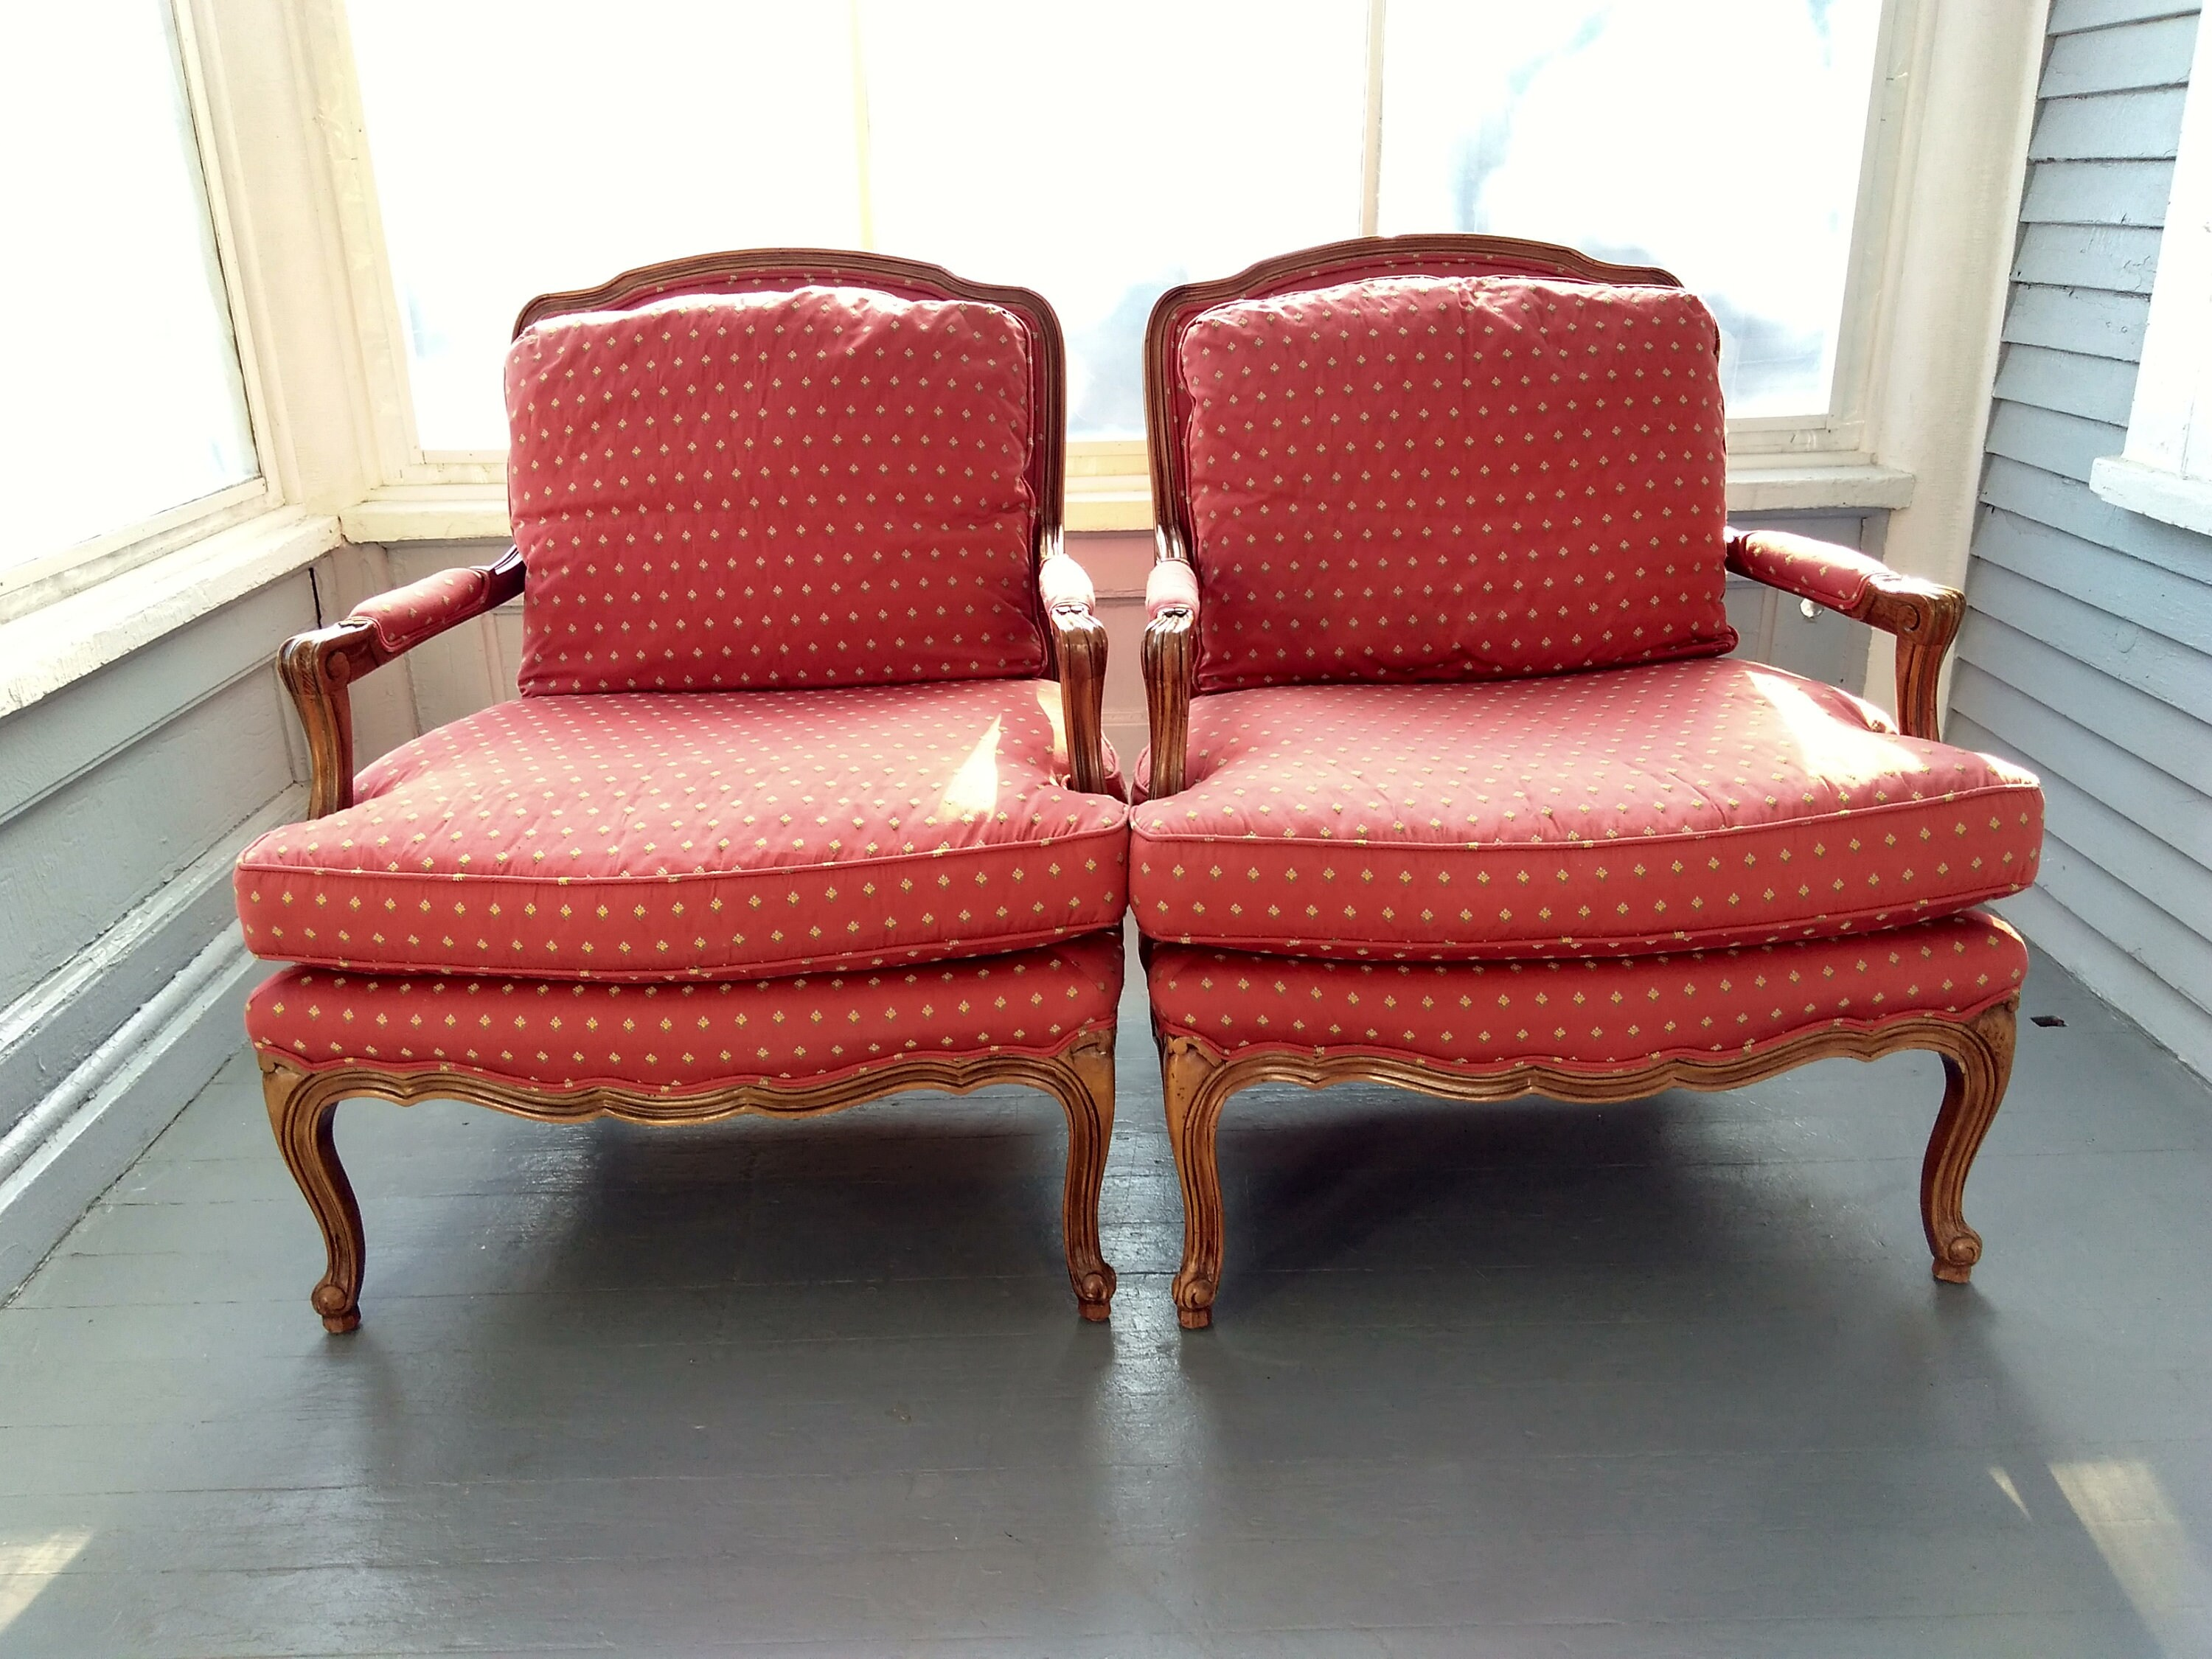 Superb Sofa Chairs Arm Chairs Wood Upholstered Chairs Queen Evergreenethics Interior Chair Design Evergreenethicsorg